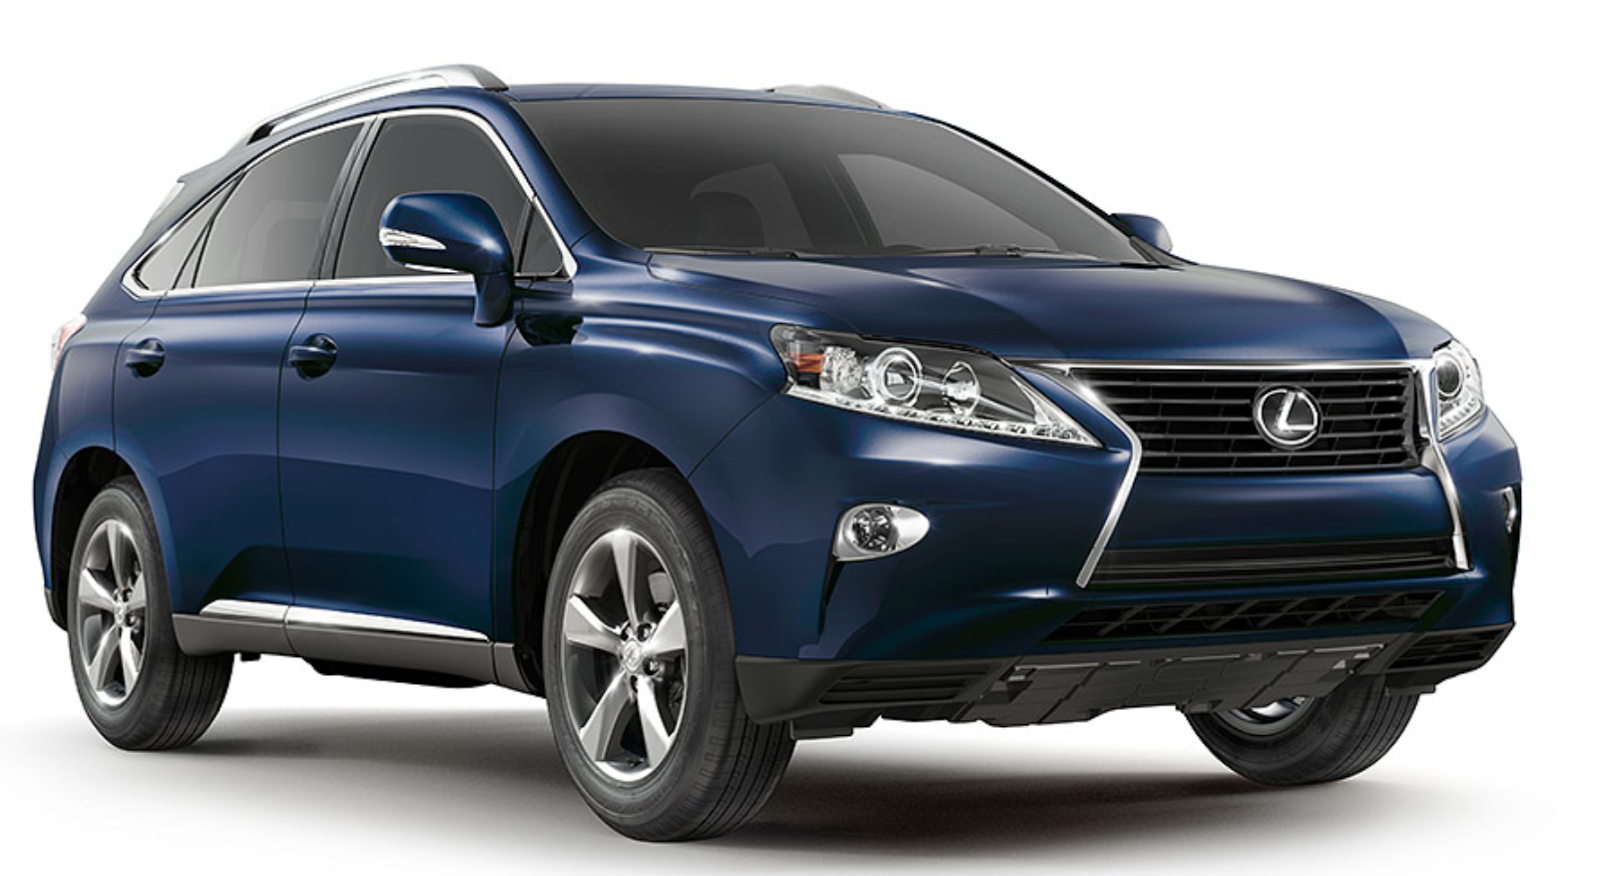 Lexus SUV the RX 350 in blue